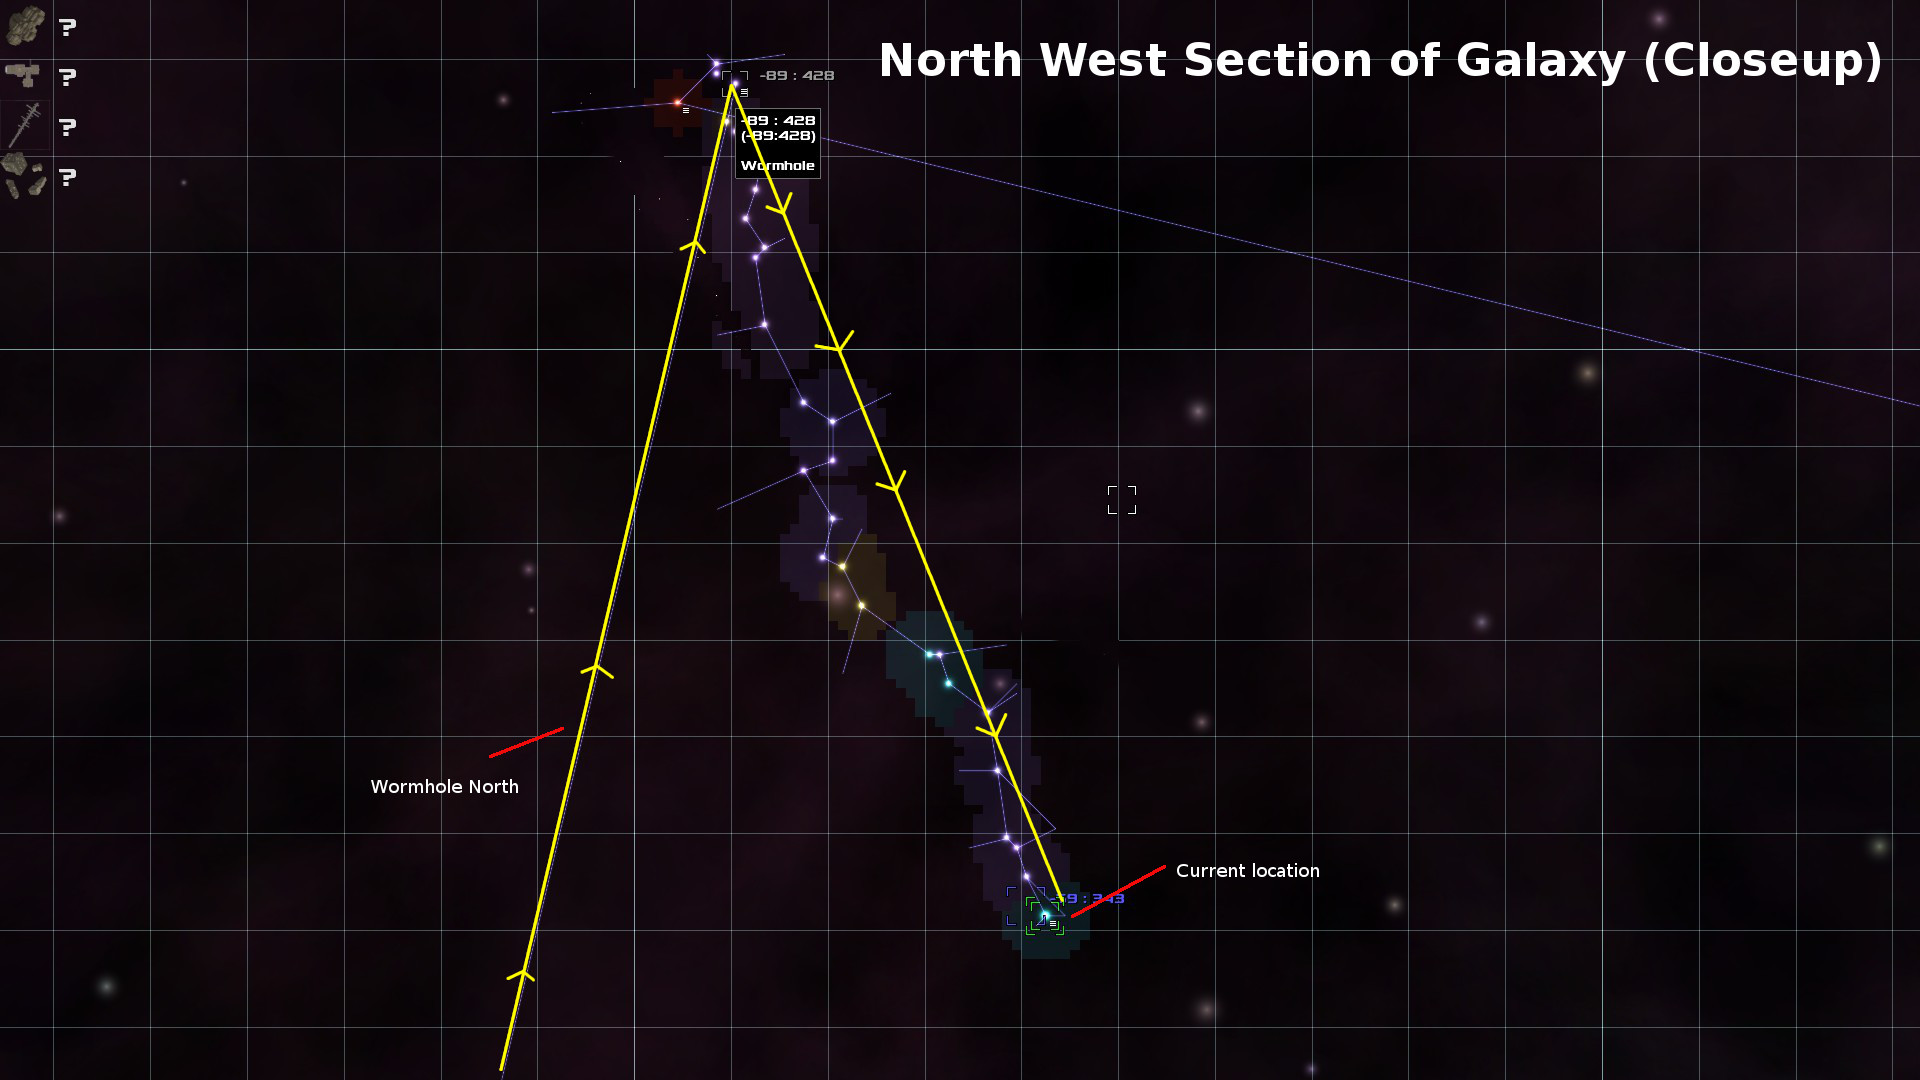 North Section of Galaxy - through Wormhole